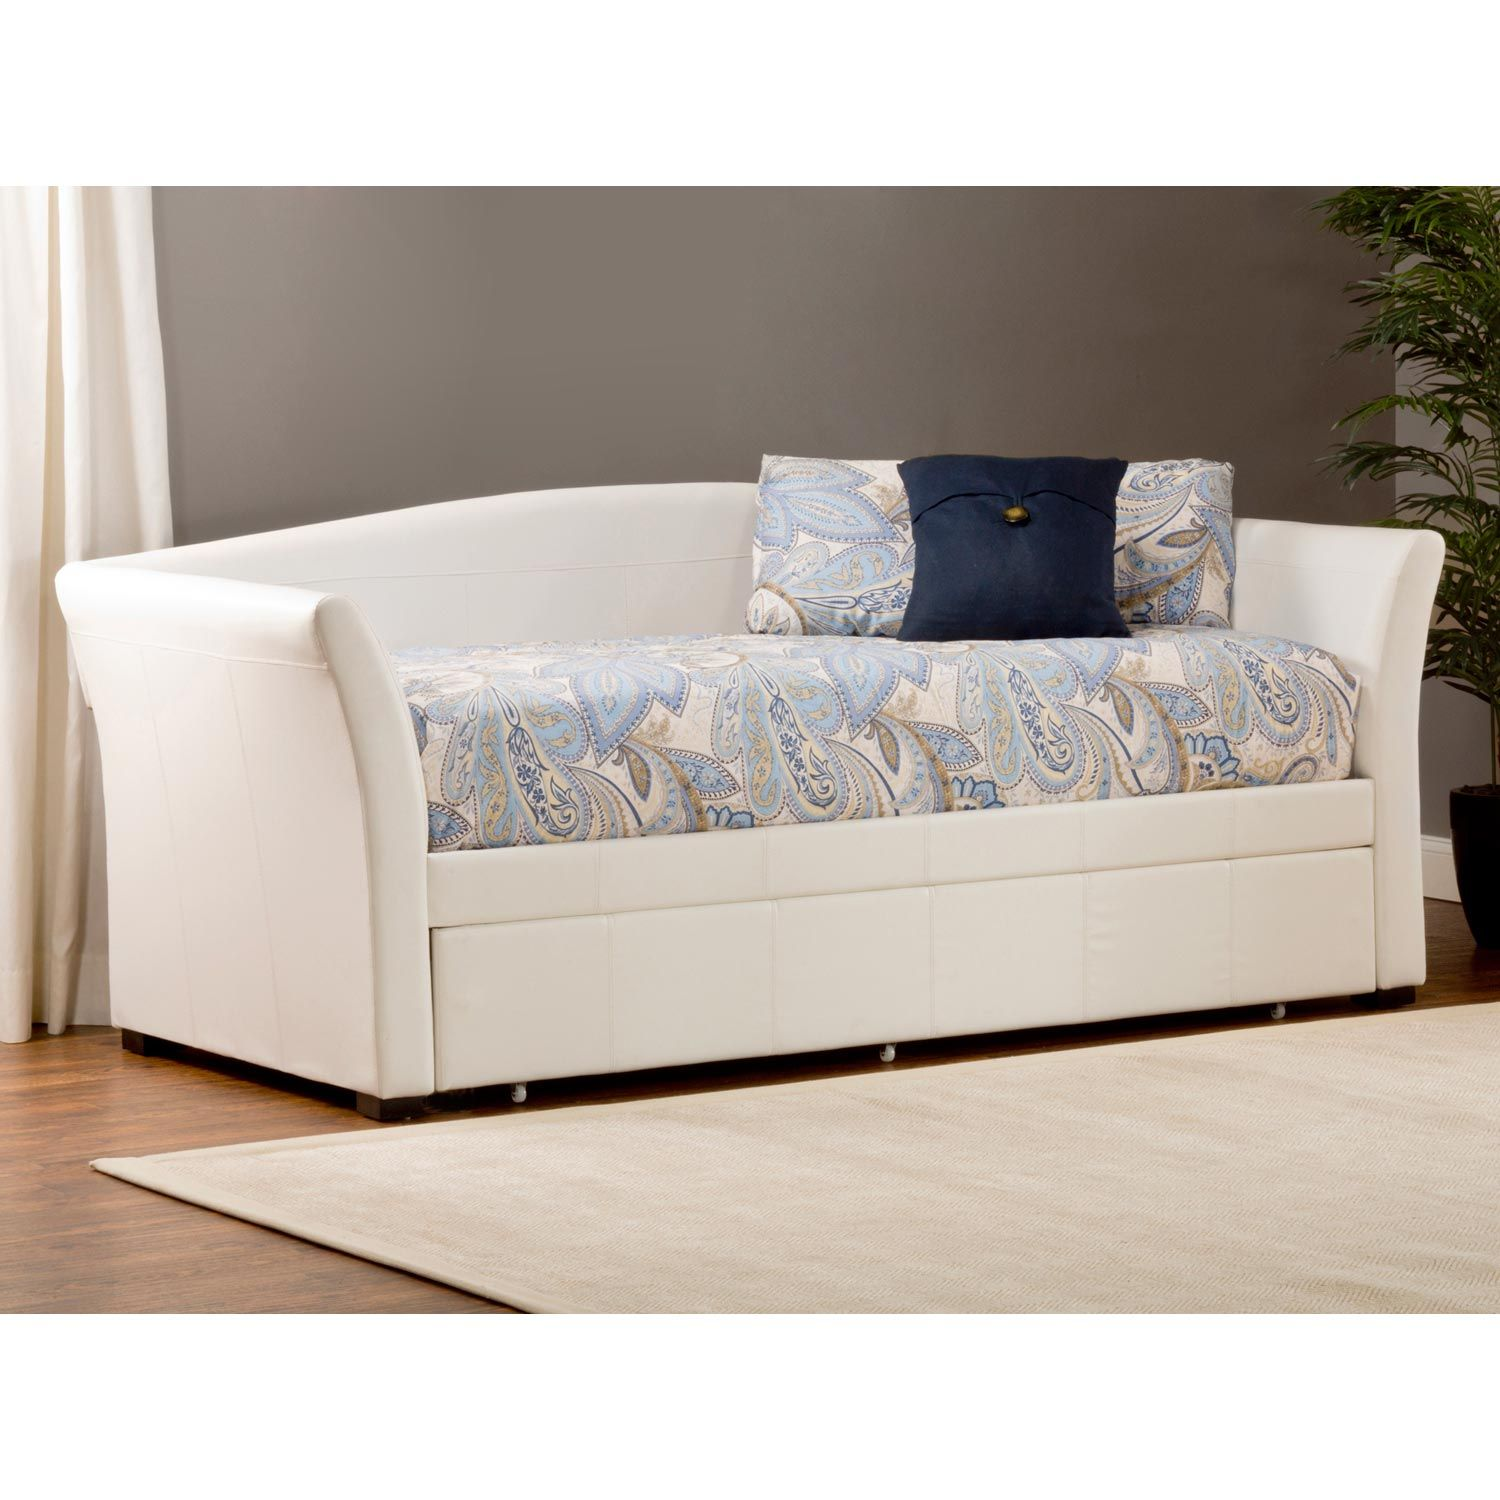 Montgomery Upholstered Daybed Amp Trundle White Palm